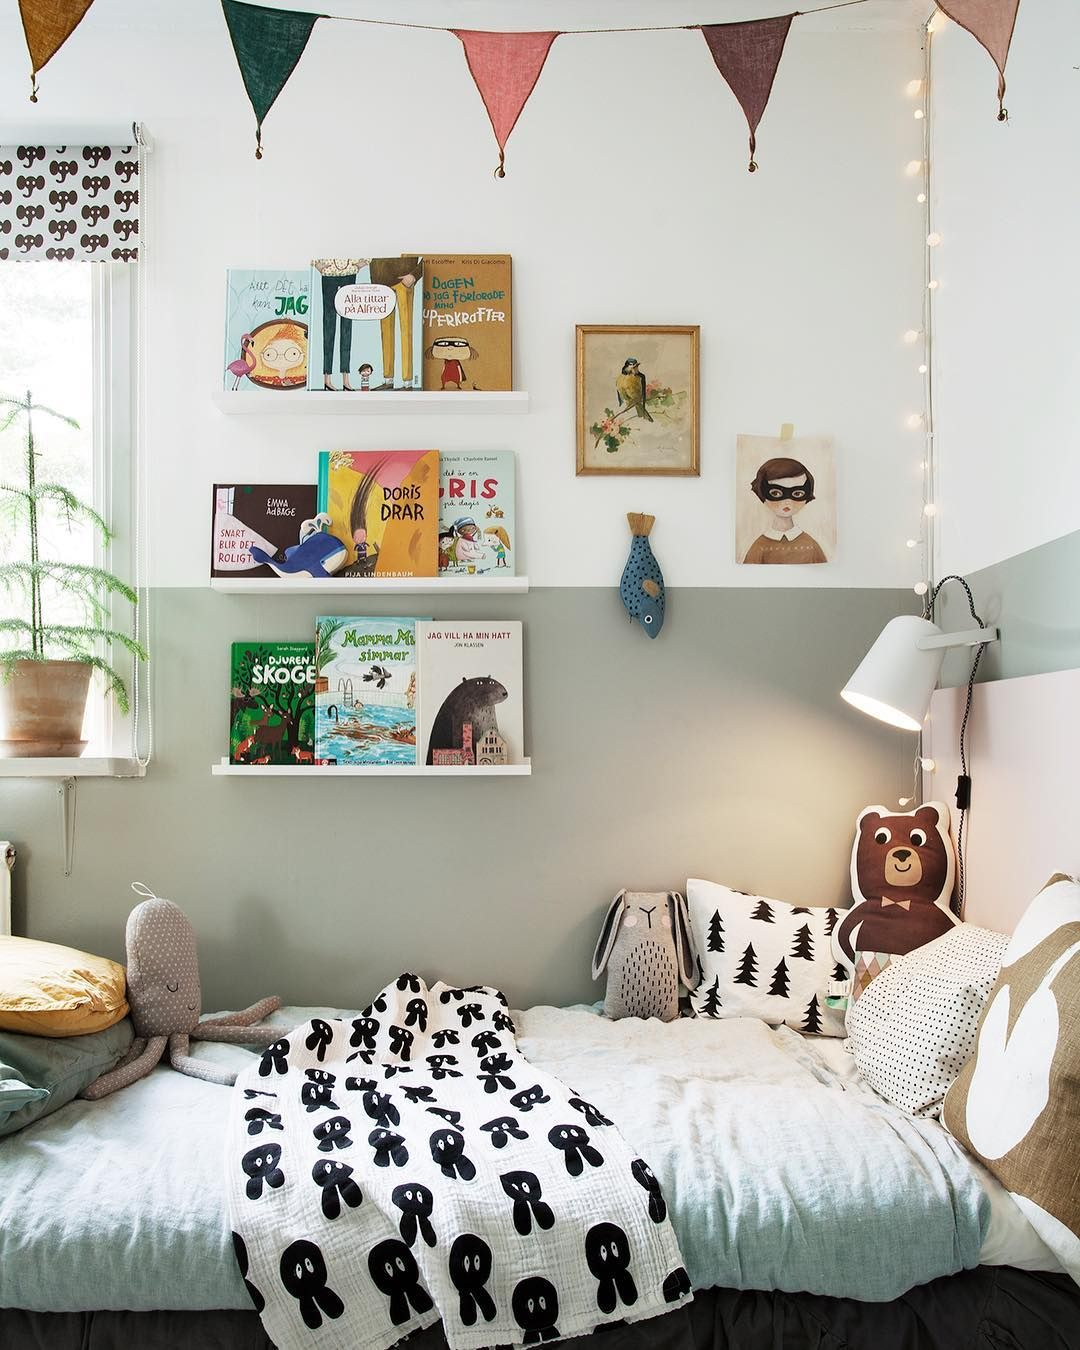 Bed under window  shelf under the window  book shelves by the bed  lamp  twinkly